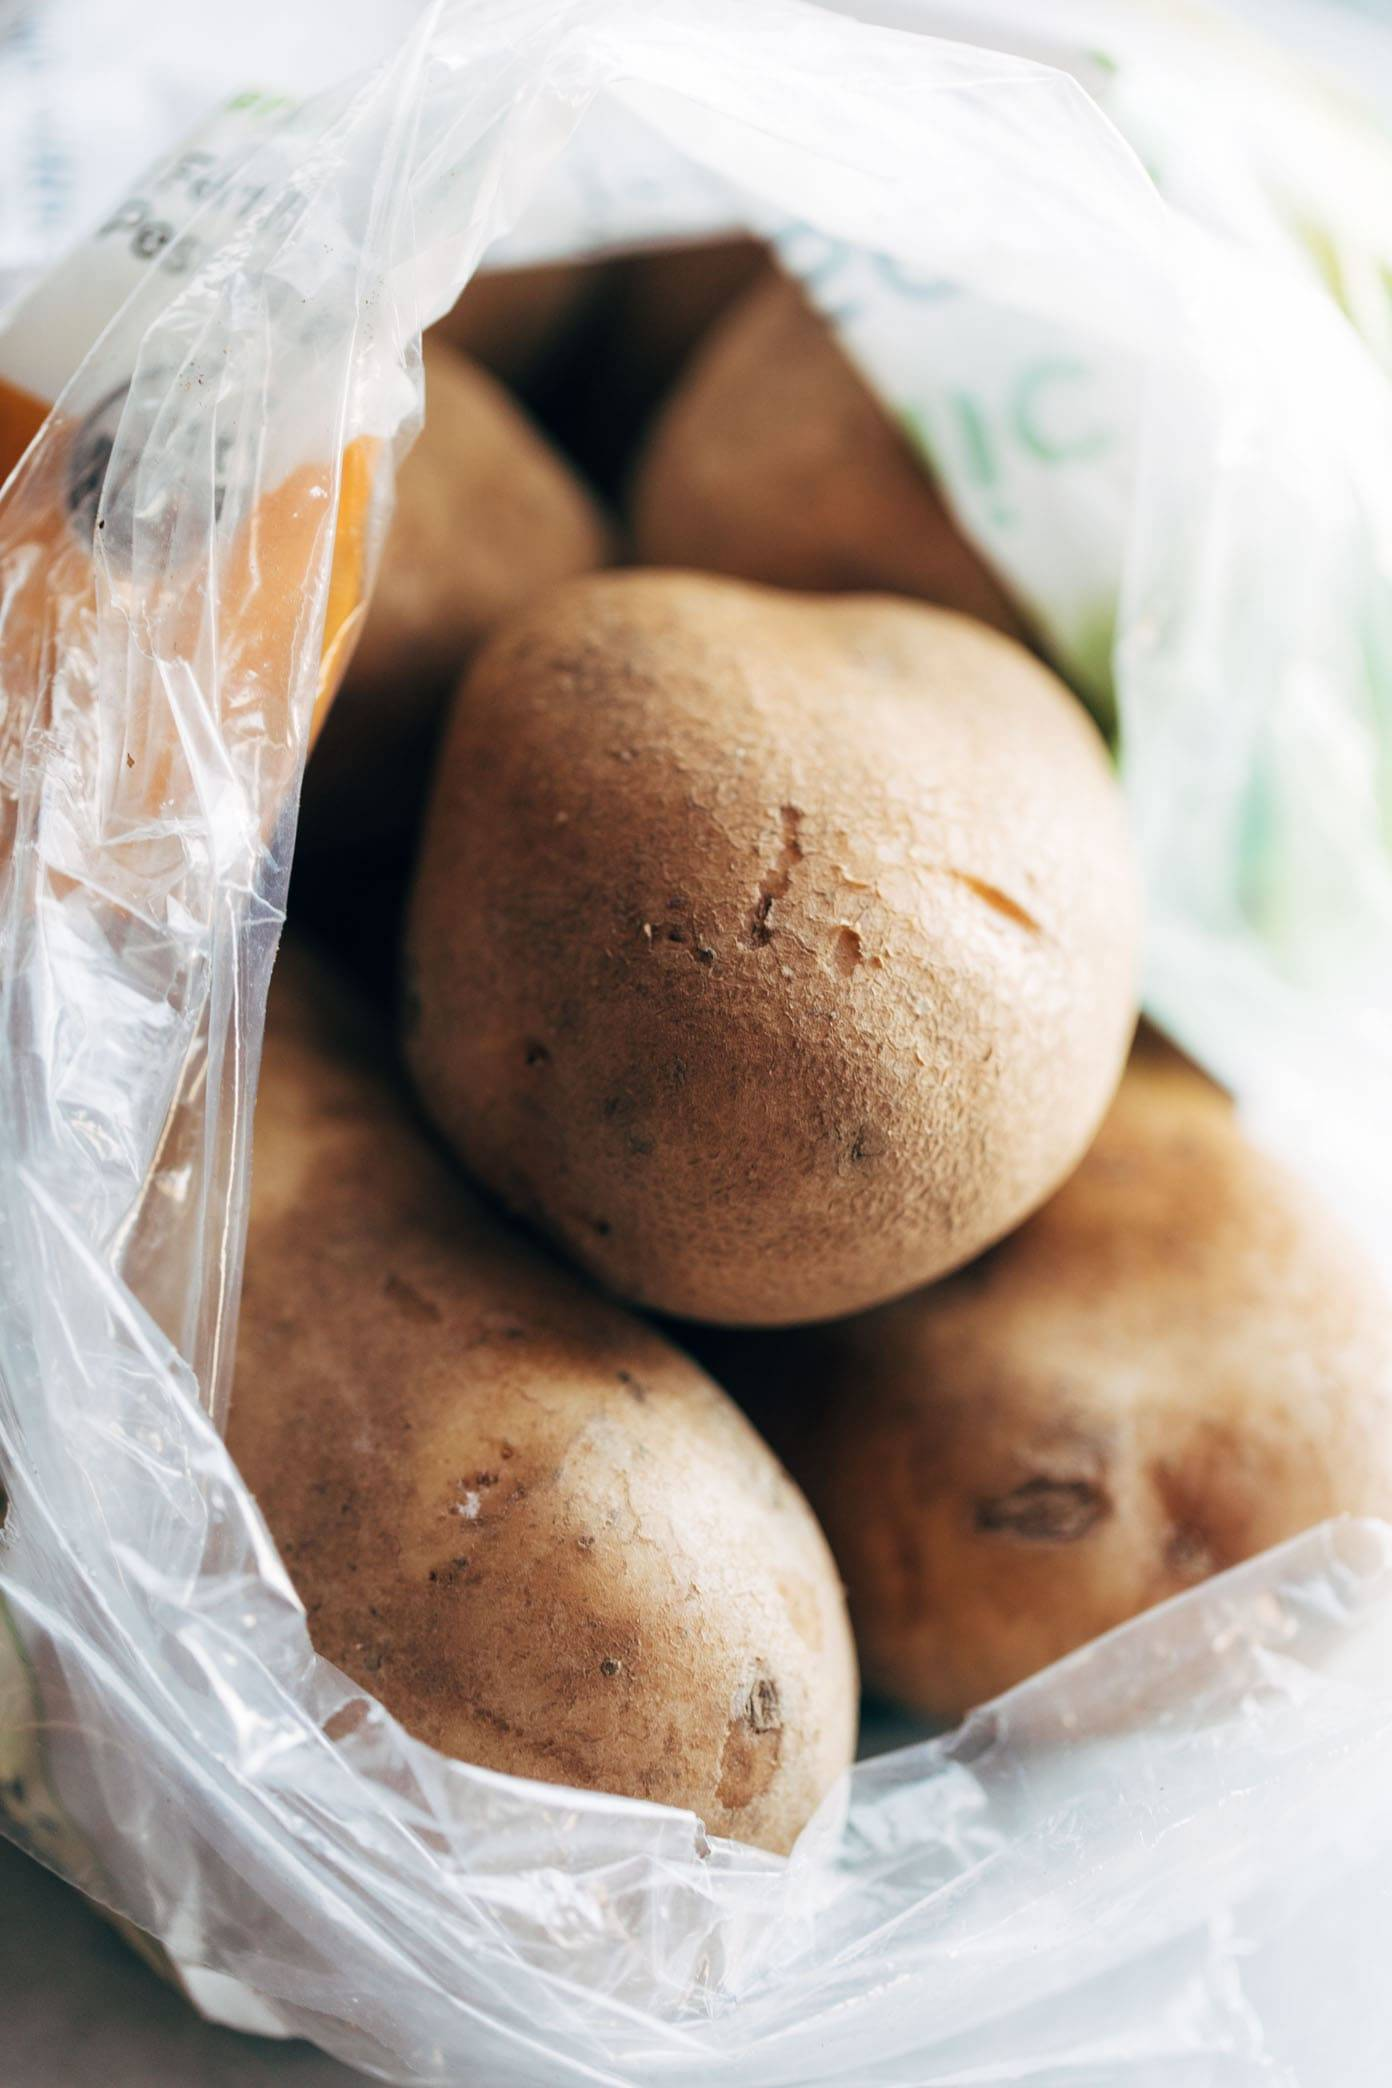 Potatoes in a plastic bag.